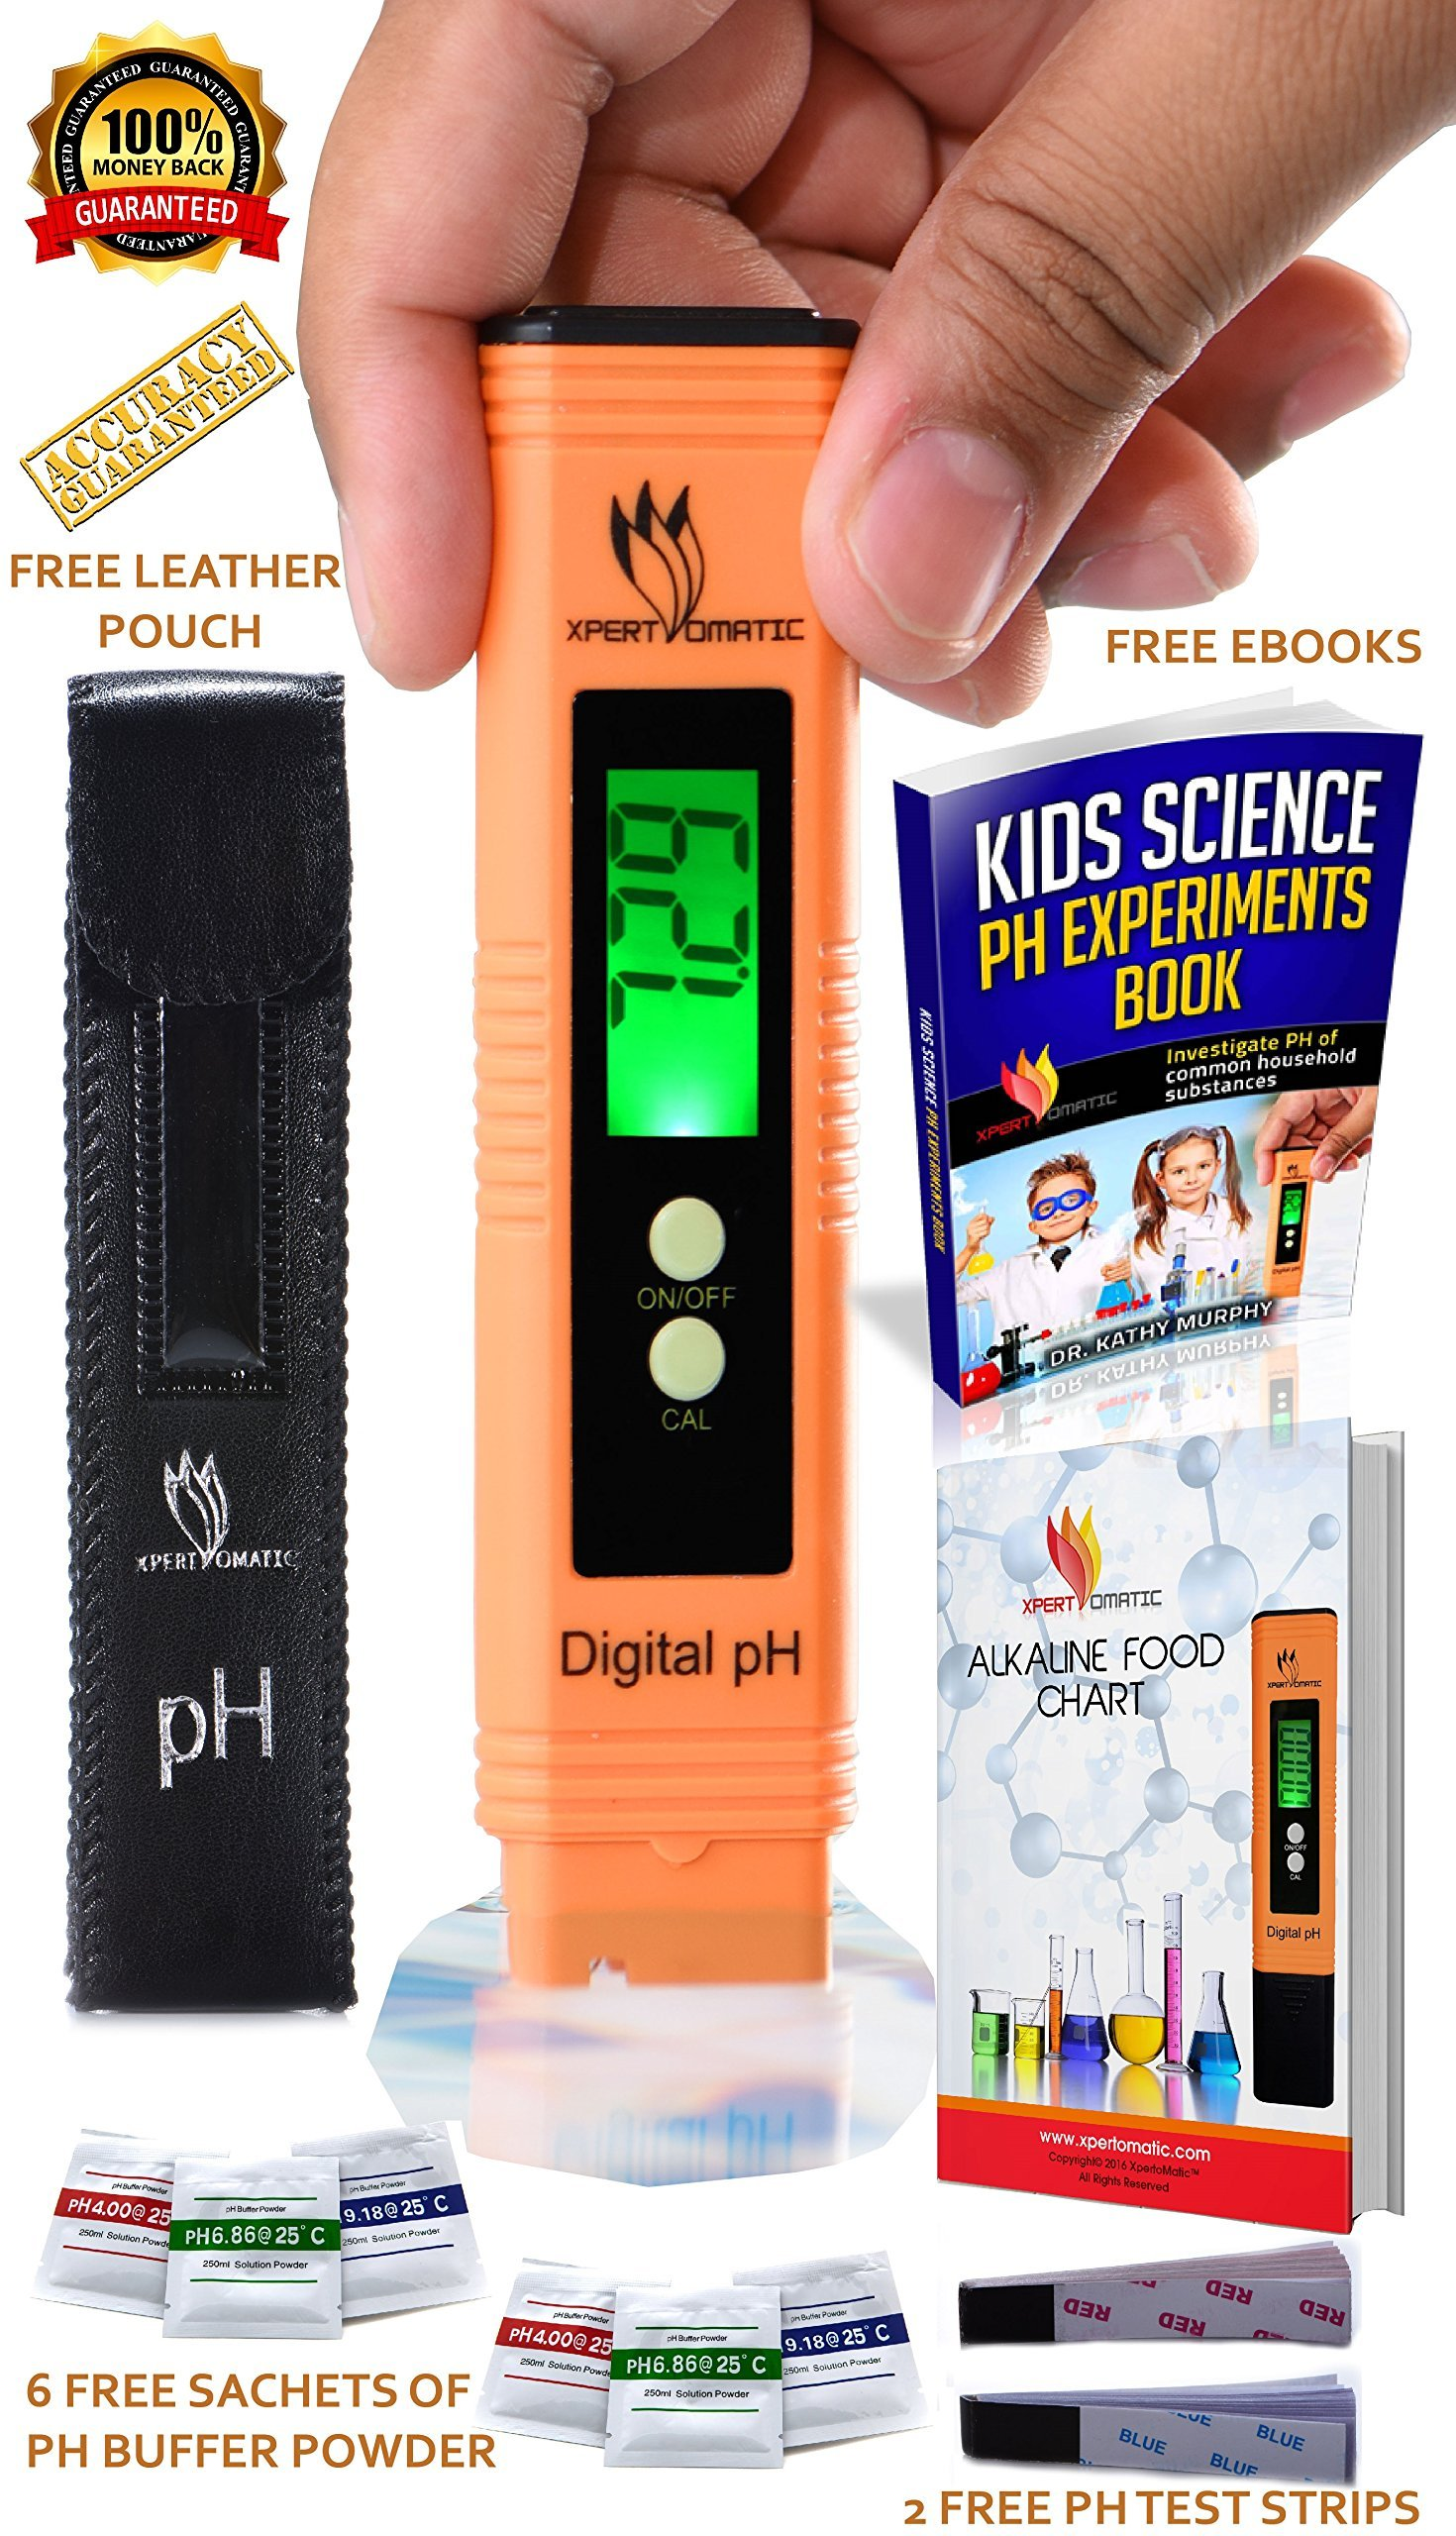 BLOWOUT OFFER - Digital pH Meter Kit | High Accuracy pH Tester Range 0-14 | Hydroponics, Aquarium, Swimming Pool, Water Quality Test with ATC | 6 Sachets of pH Buffer Solution Powder | Extra Battery